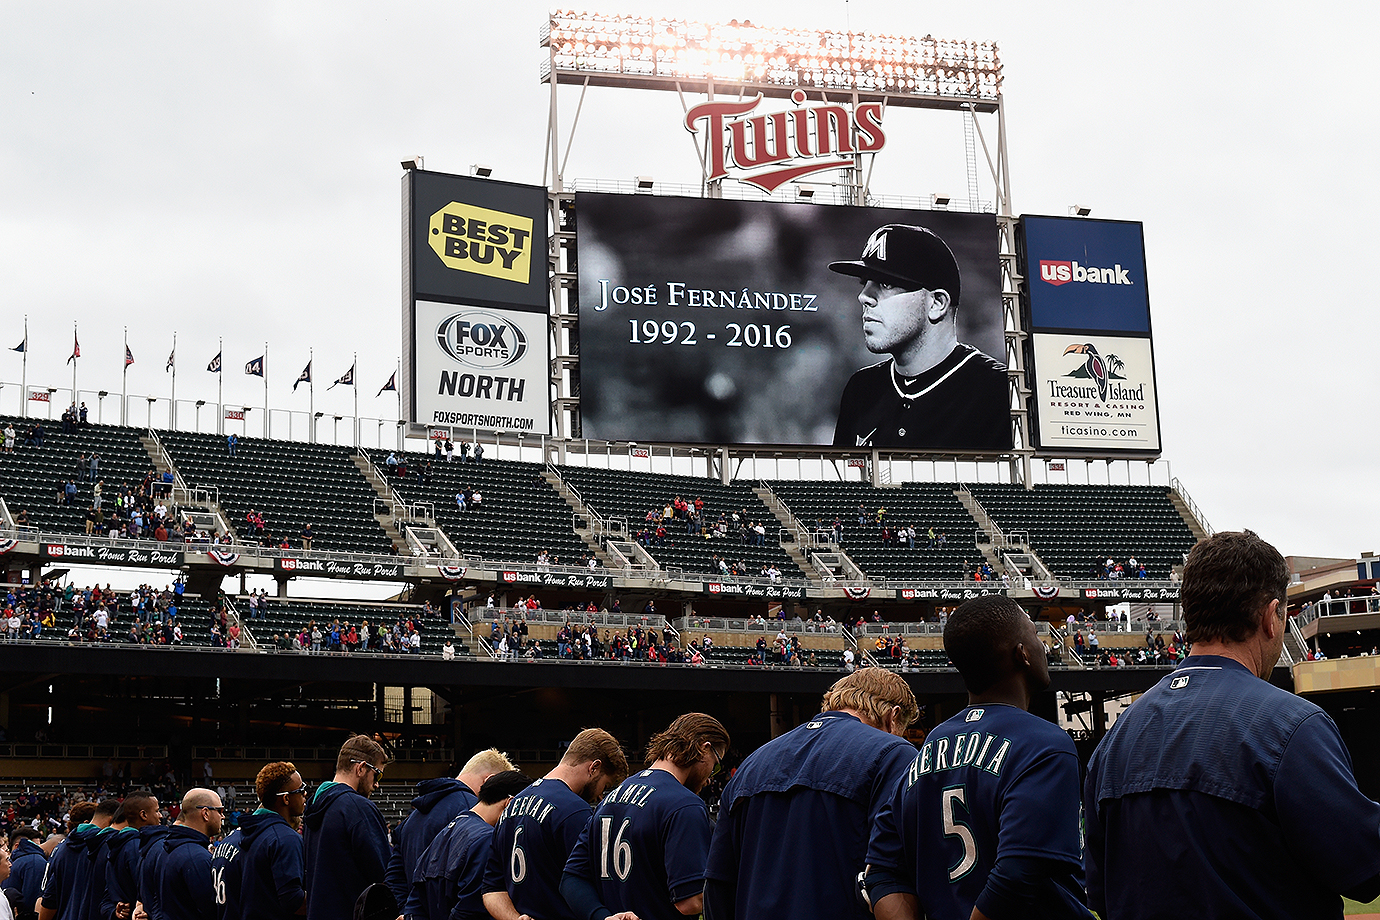 The Seattle Mariners observe a moment of silence in remembrance of Jose Fernandez before their game against the Minnesota Twins on Sunday, Sept. 25, 2016 at Target Field in Minneapolis, Minn.